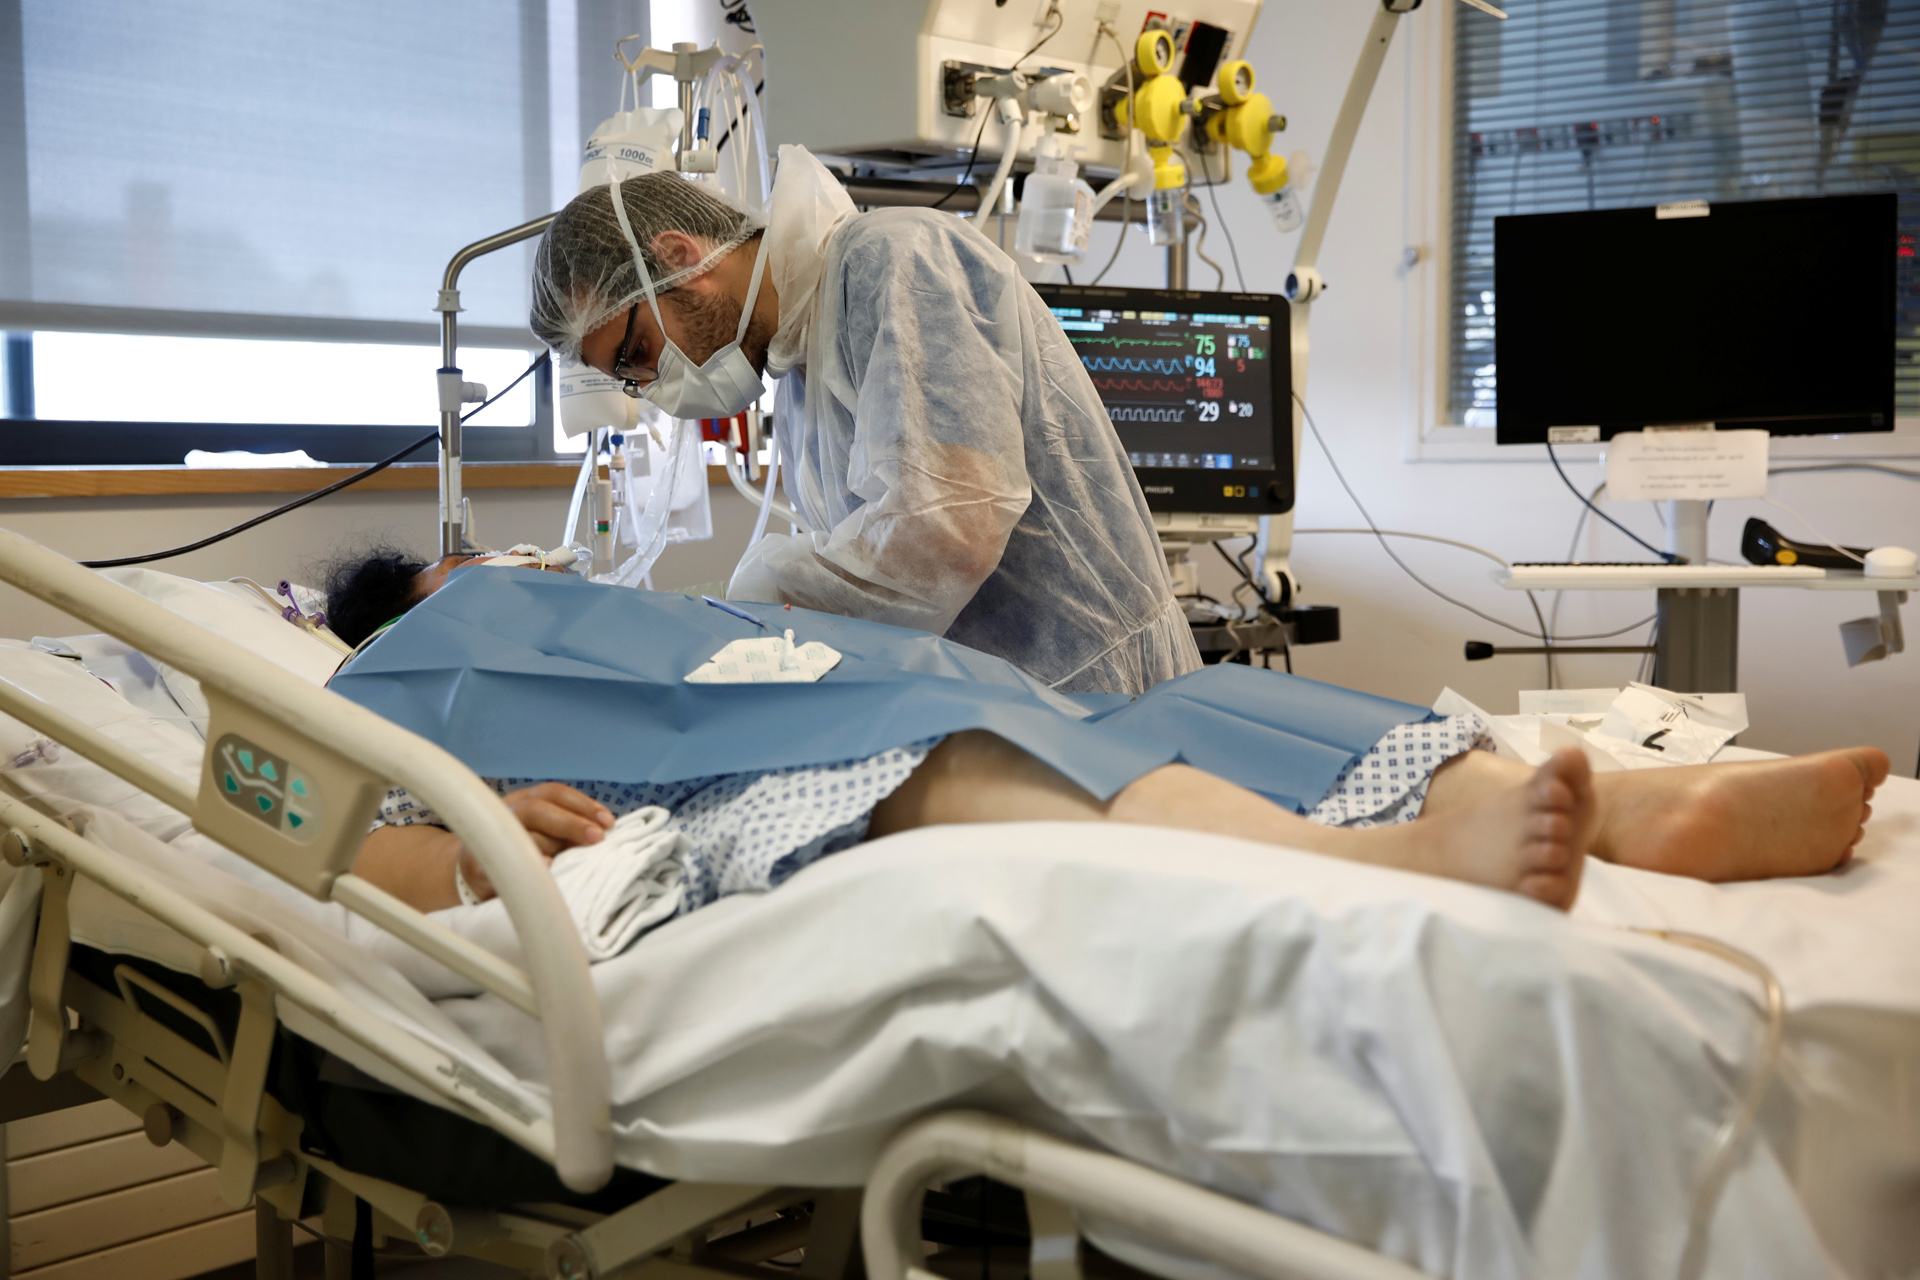 A patient suffering from coronavirus disease (COVID-19) is treated at the intensive care unit at the Institut Mutualiste Montsouris (IMM) hospital in Paris as the spread of the coronavirus disease continues in France, April 6, 2020. REUTERS/Benoit Tessier